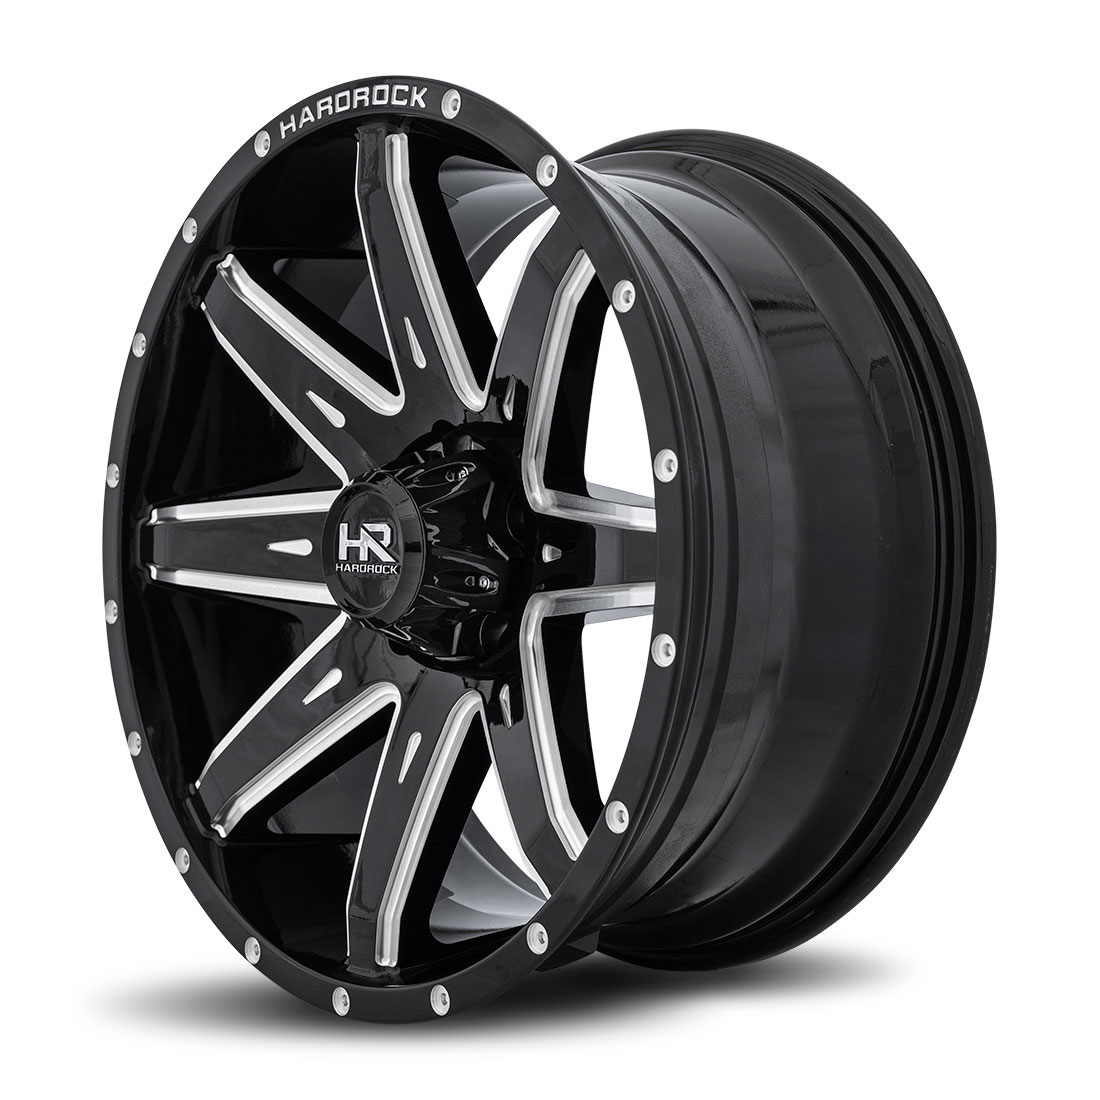 Hardrock Offroad Wheels H502 Painkiller-Xposed - Gloss Black Milled - 20x9